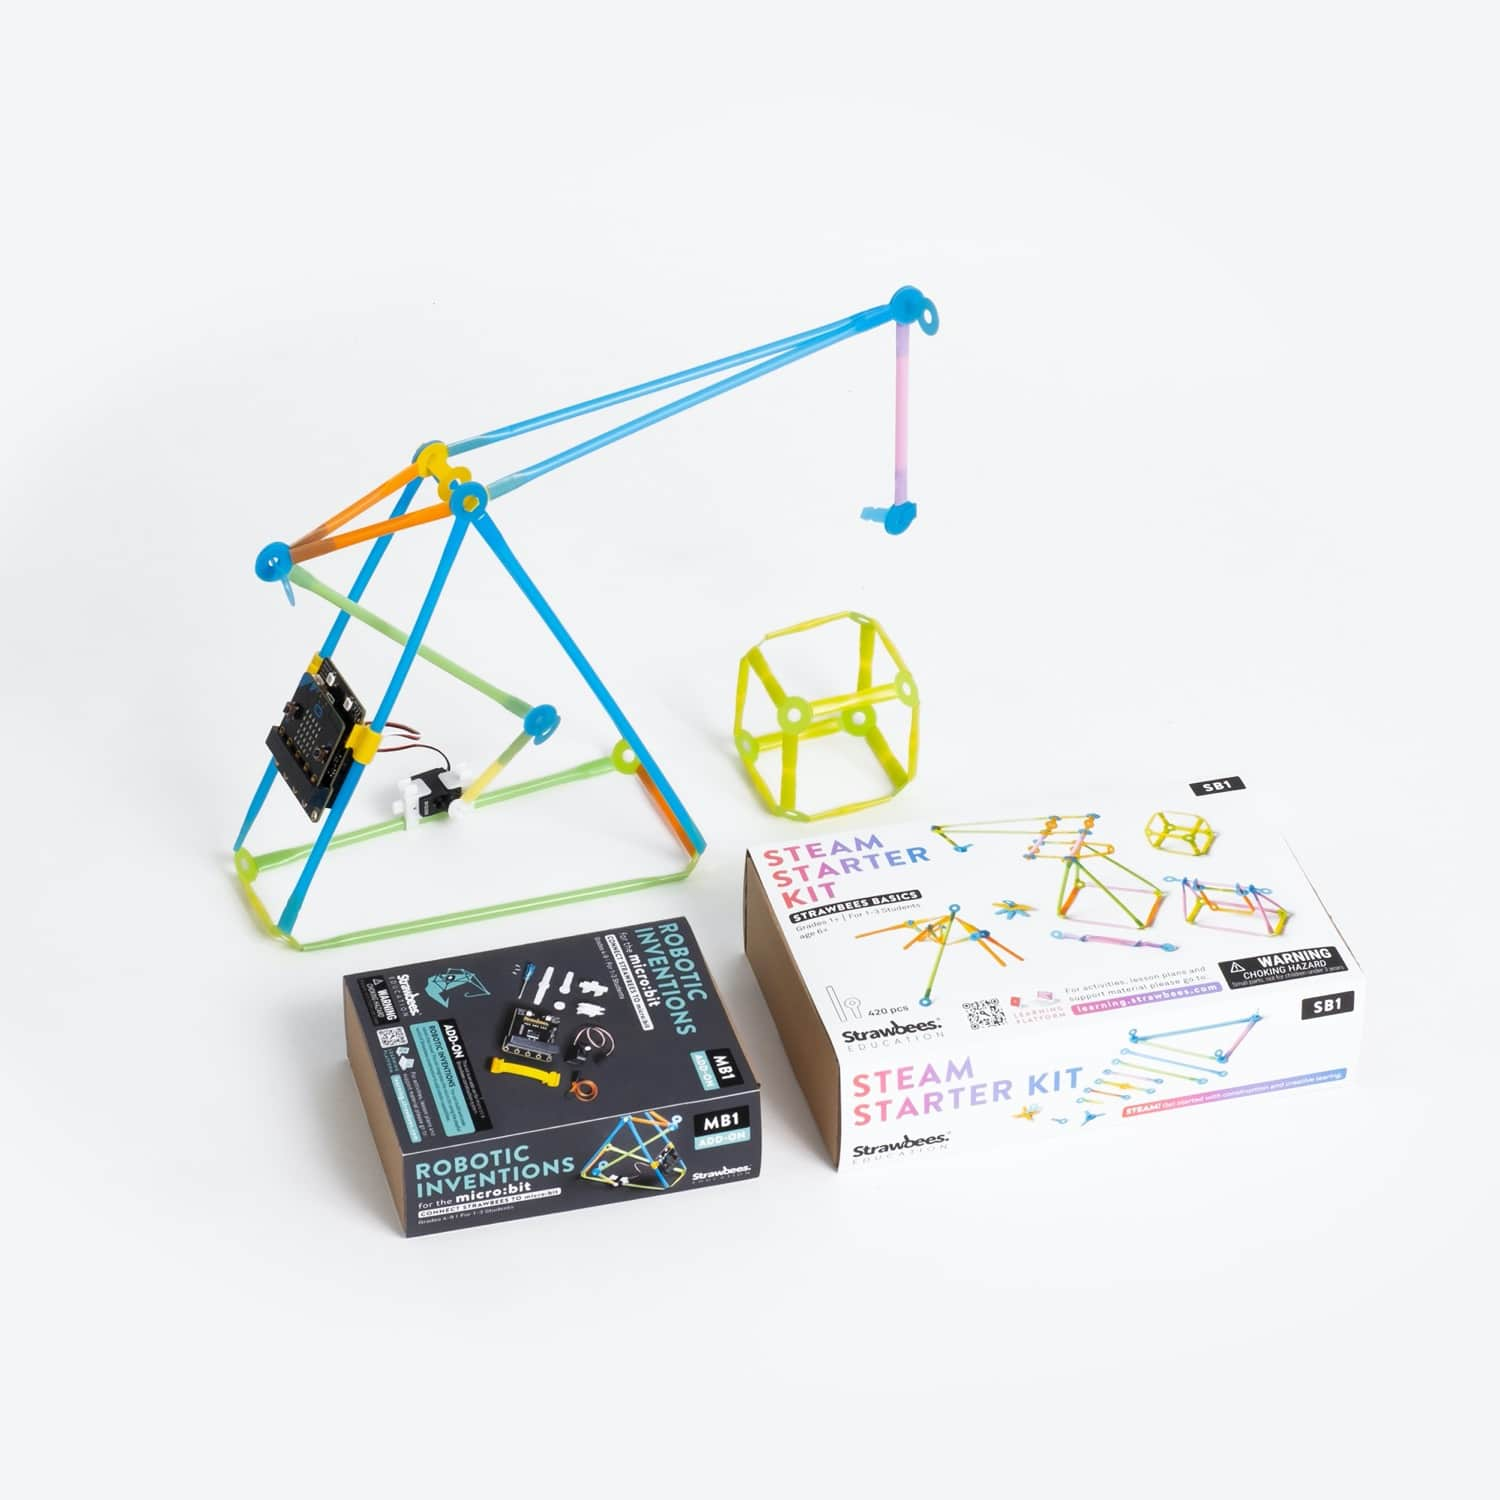 School Equipment STEAM Starter Kit for micro:bit Users - Bundle